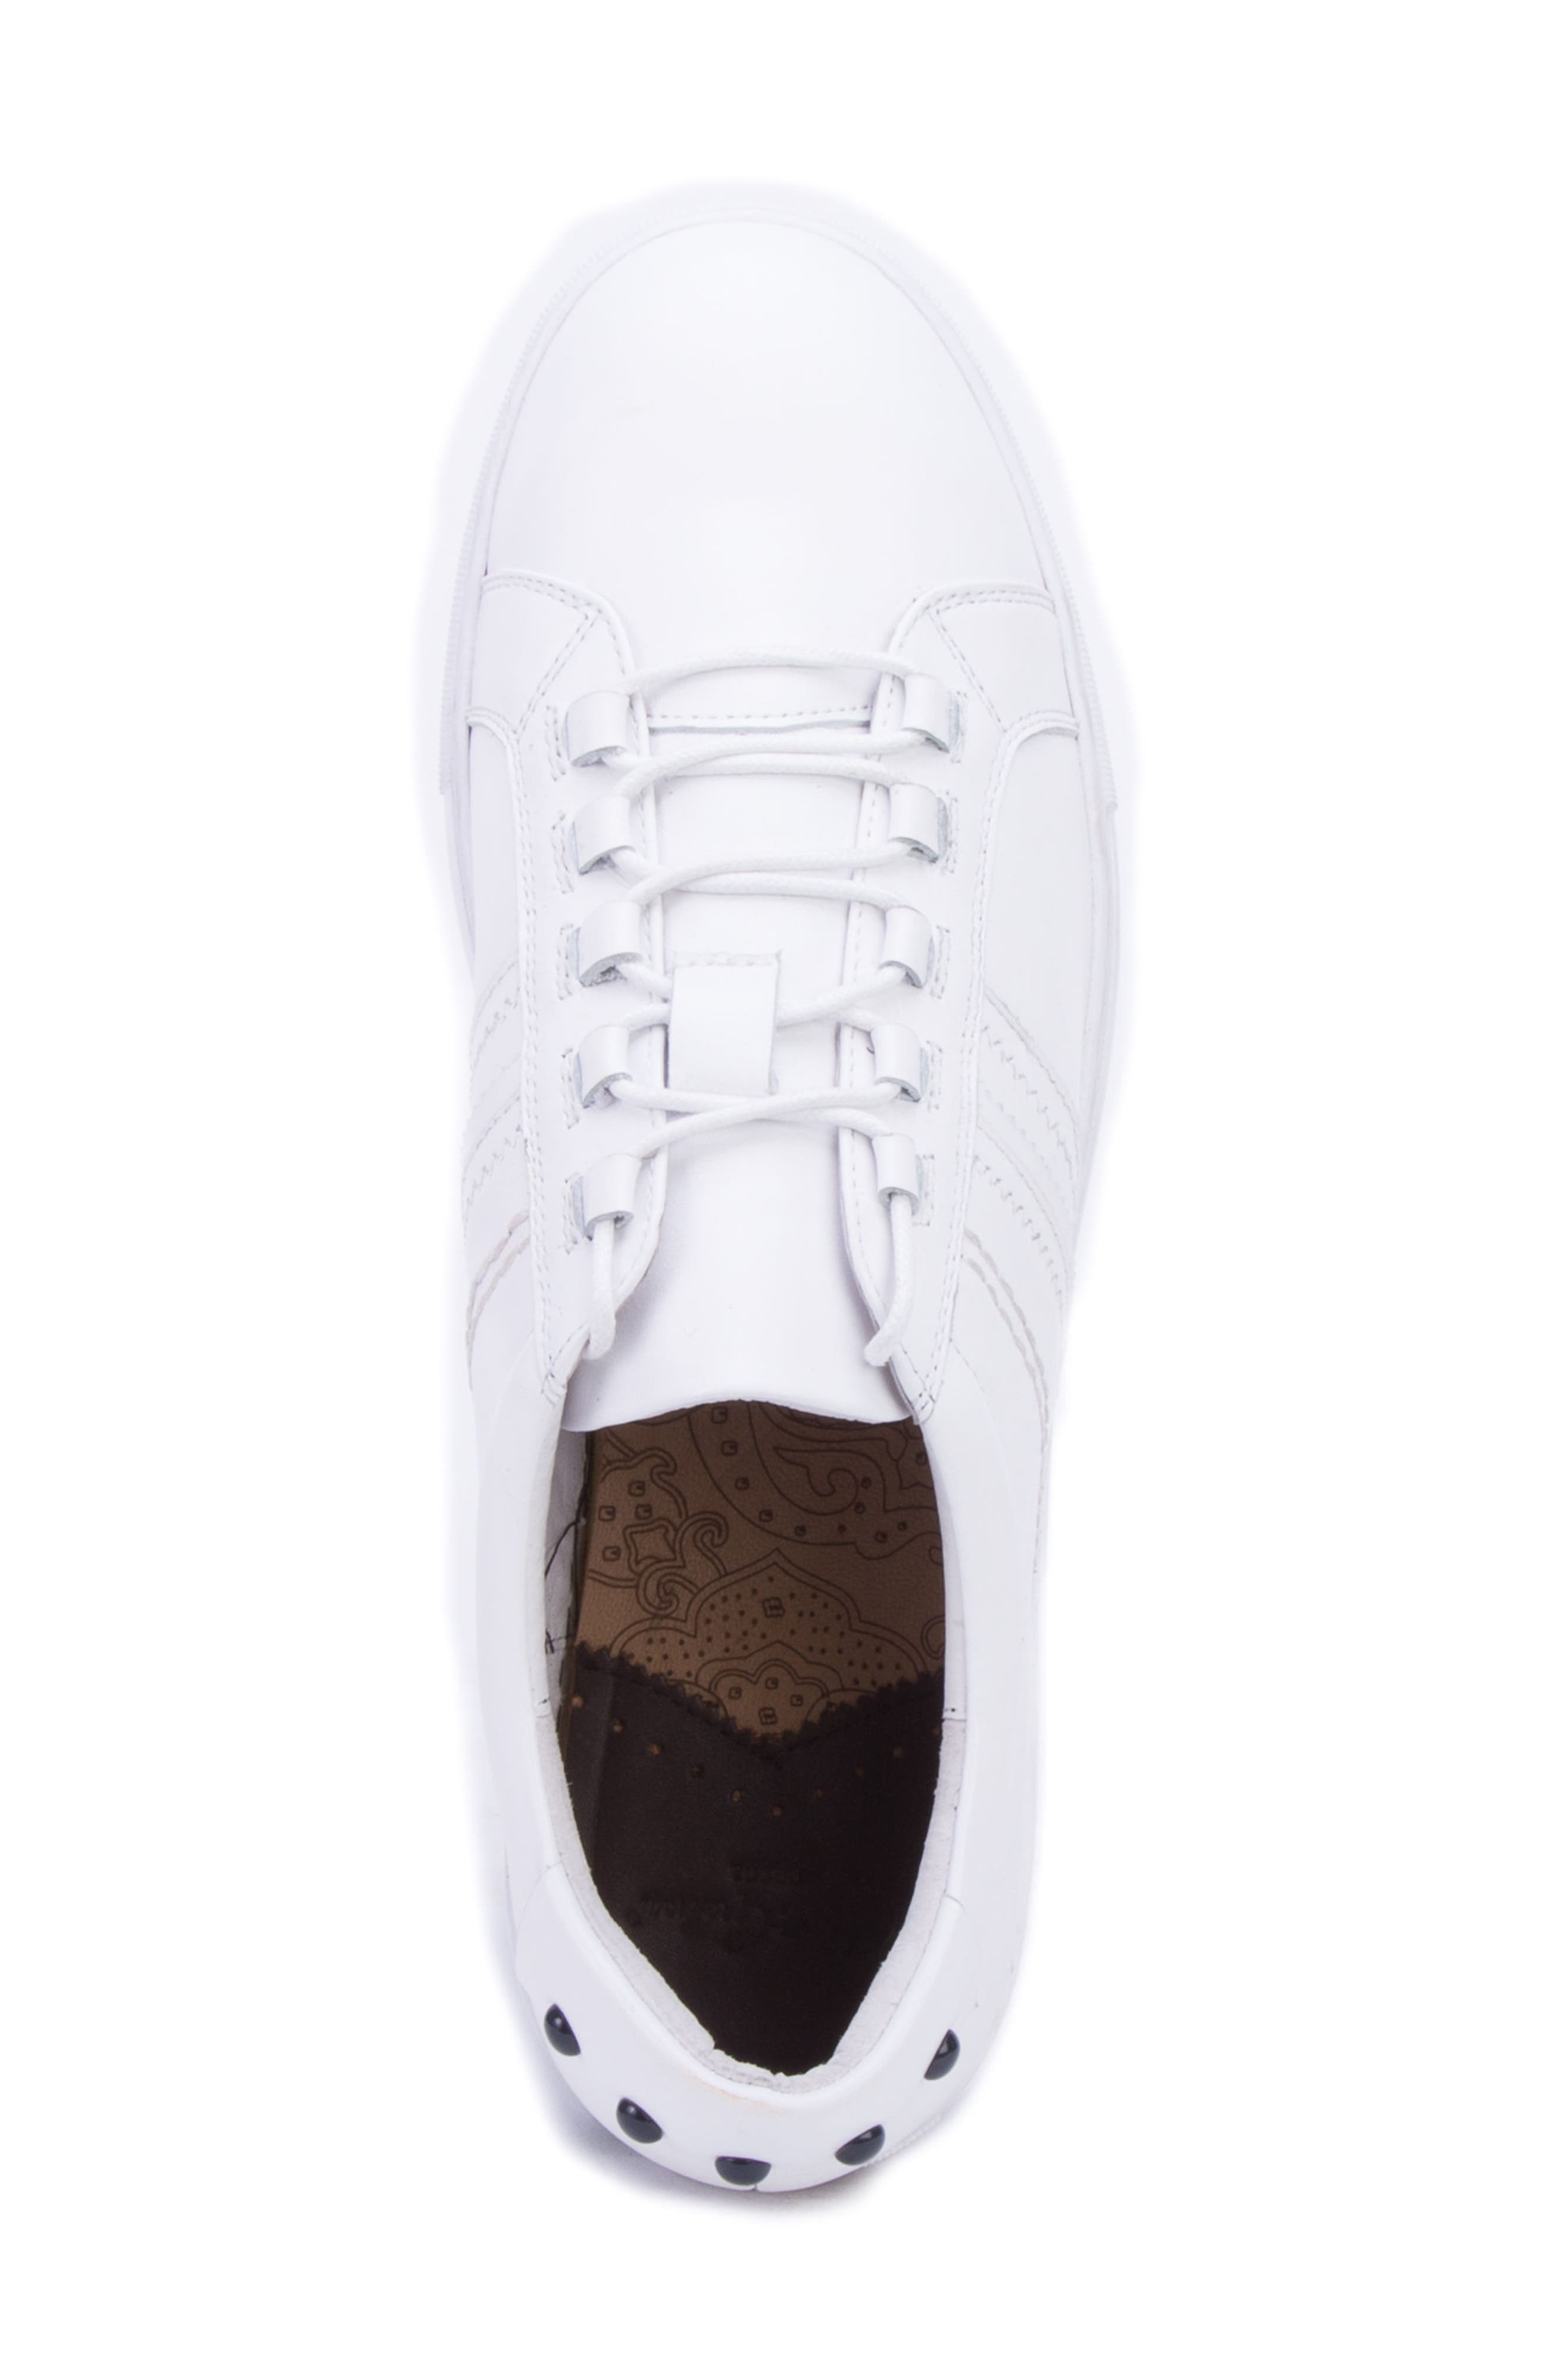 Horton Studded Low Top Sneaker,                             Alternate thumbnail 5, color,                             WHITE LEATHER